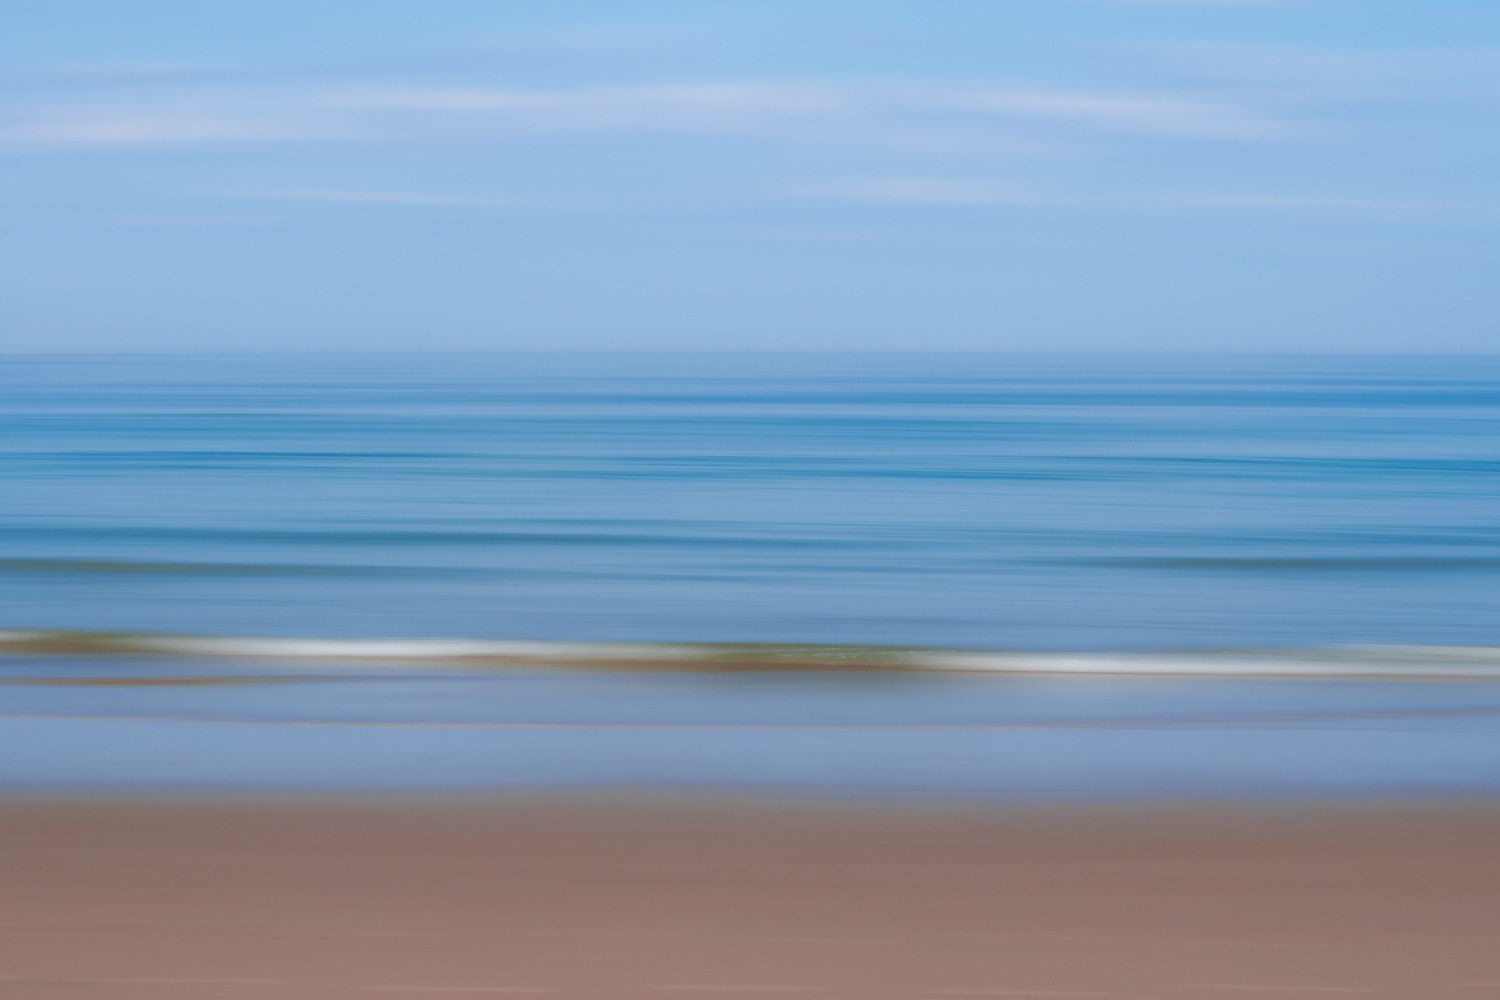 Sea of Tranquility - movement #2 by Alan Brown